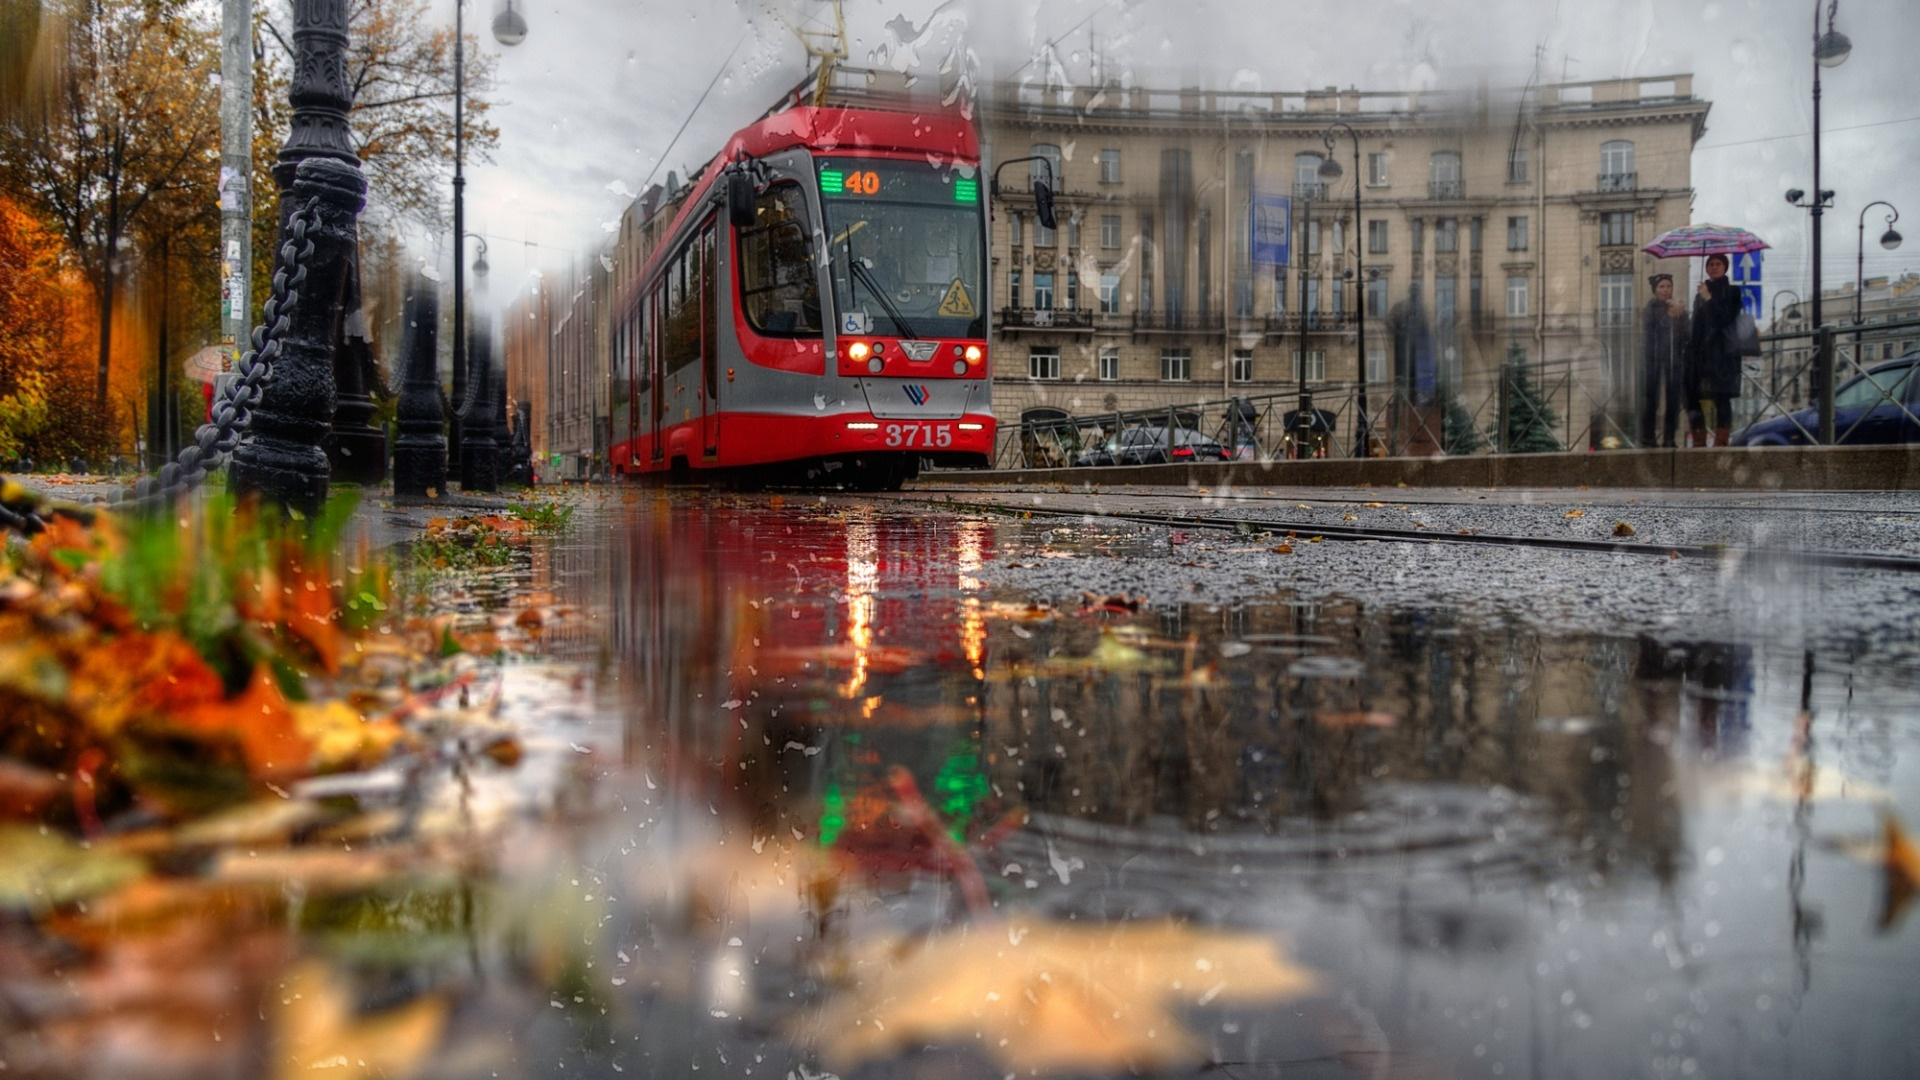 Tram desktop wallpaper hd